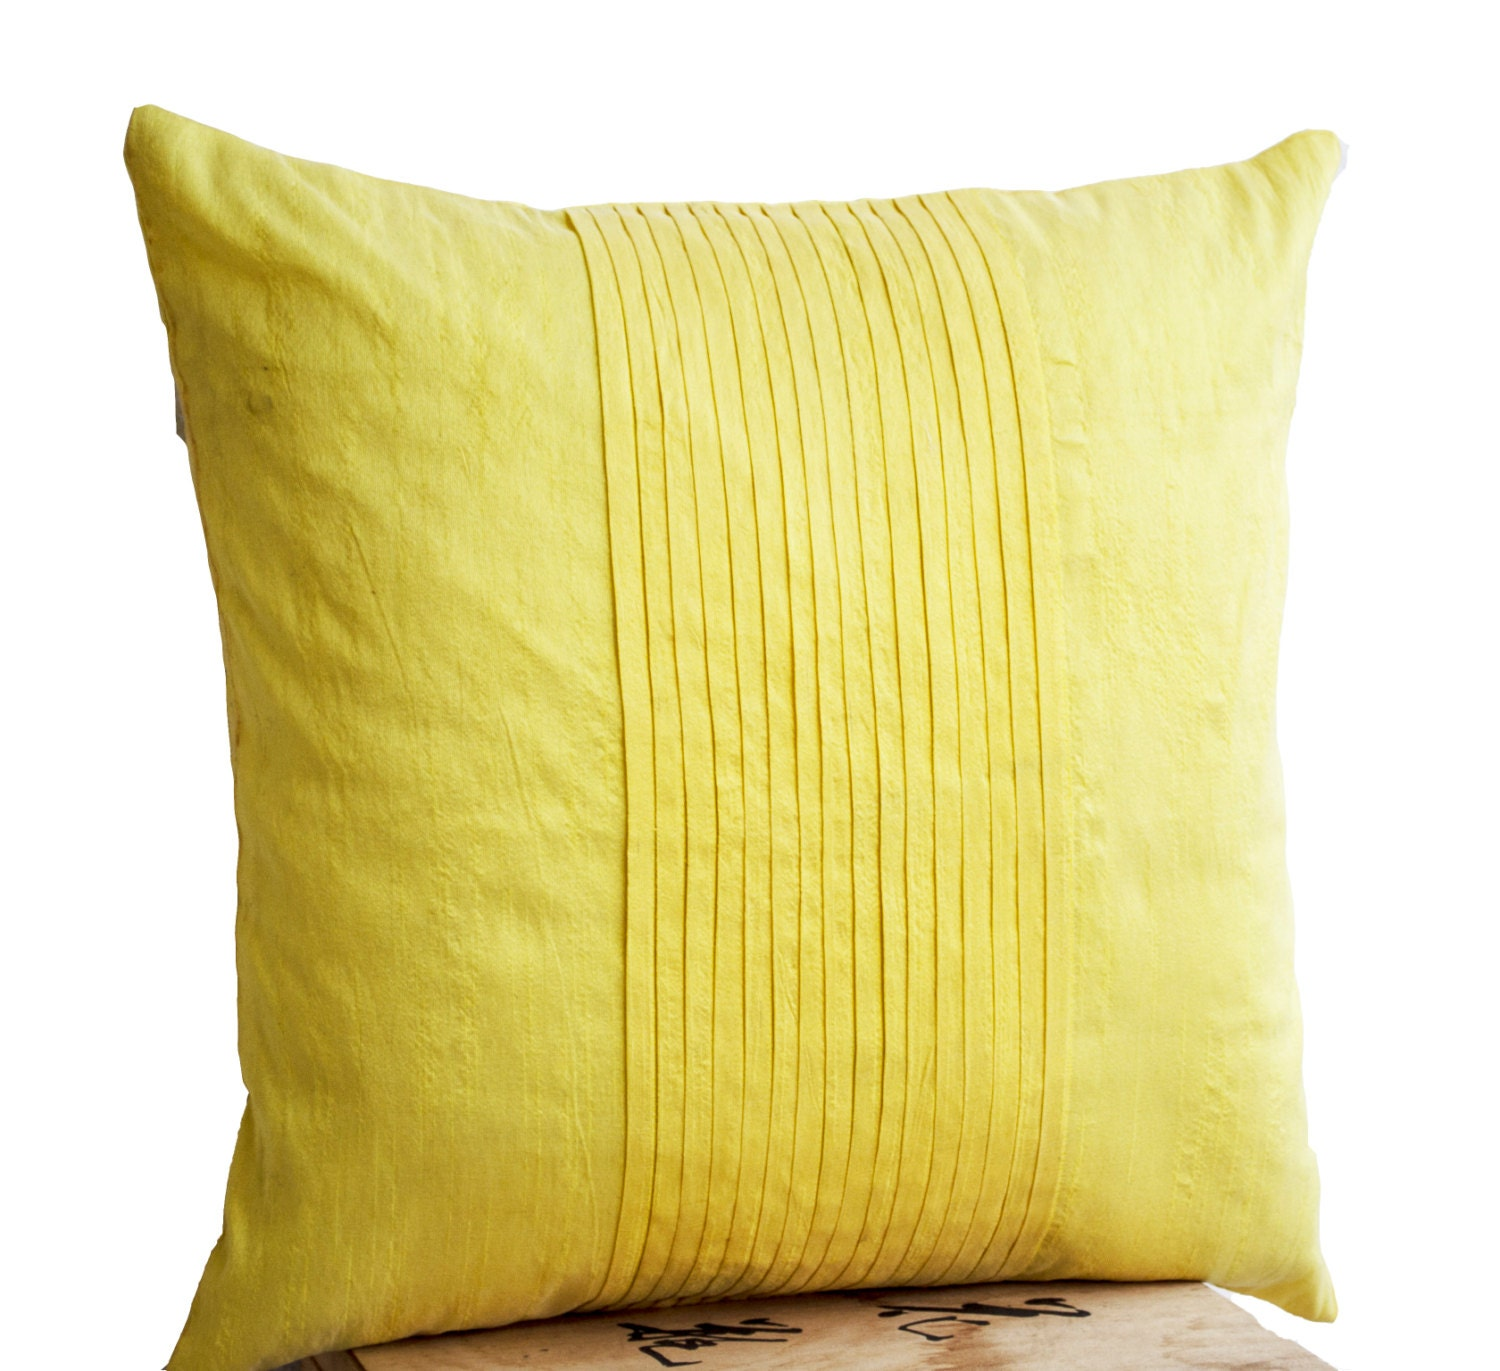 Throw pillows in yellow art silk Attractive cushion in